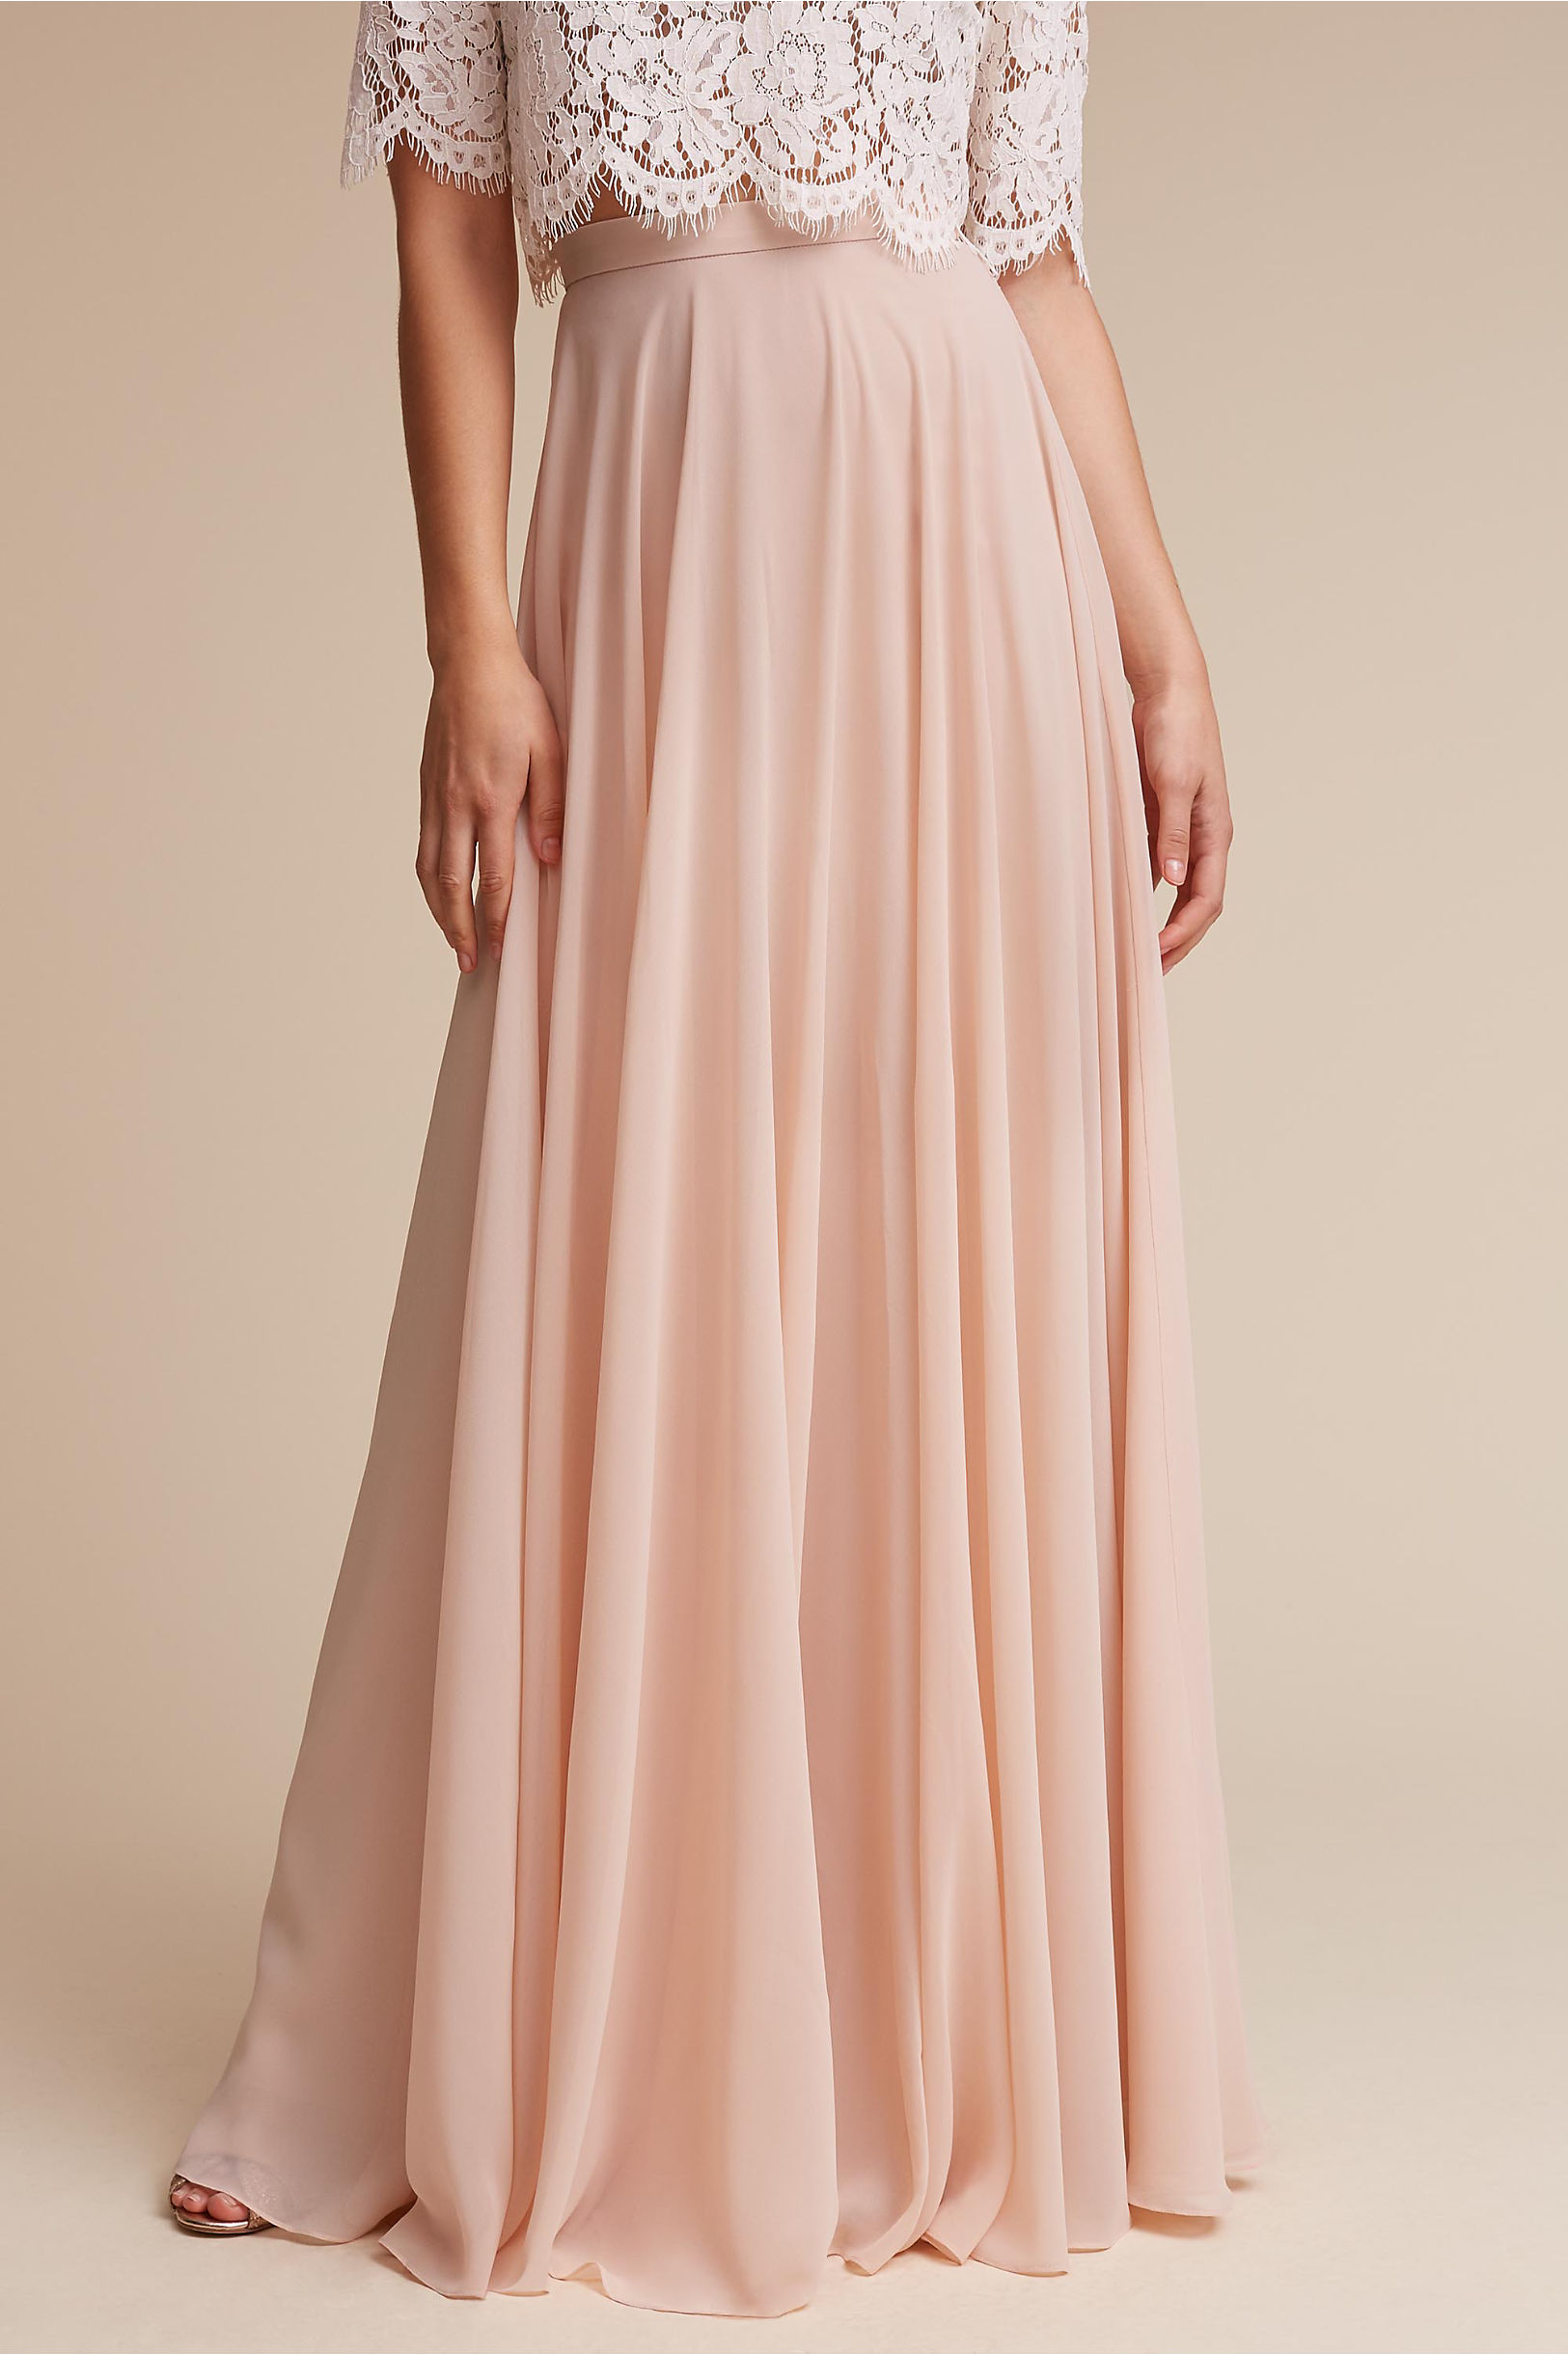 Pippa Camisole Top & Hampton Skirt in Bridesmaids & Bridal Party | BHLDN